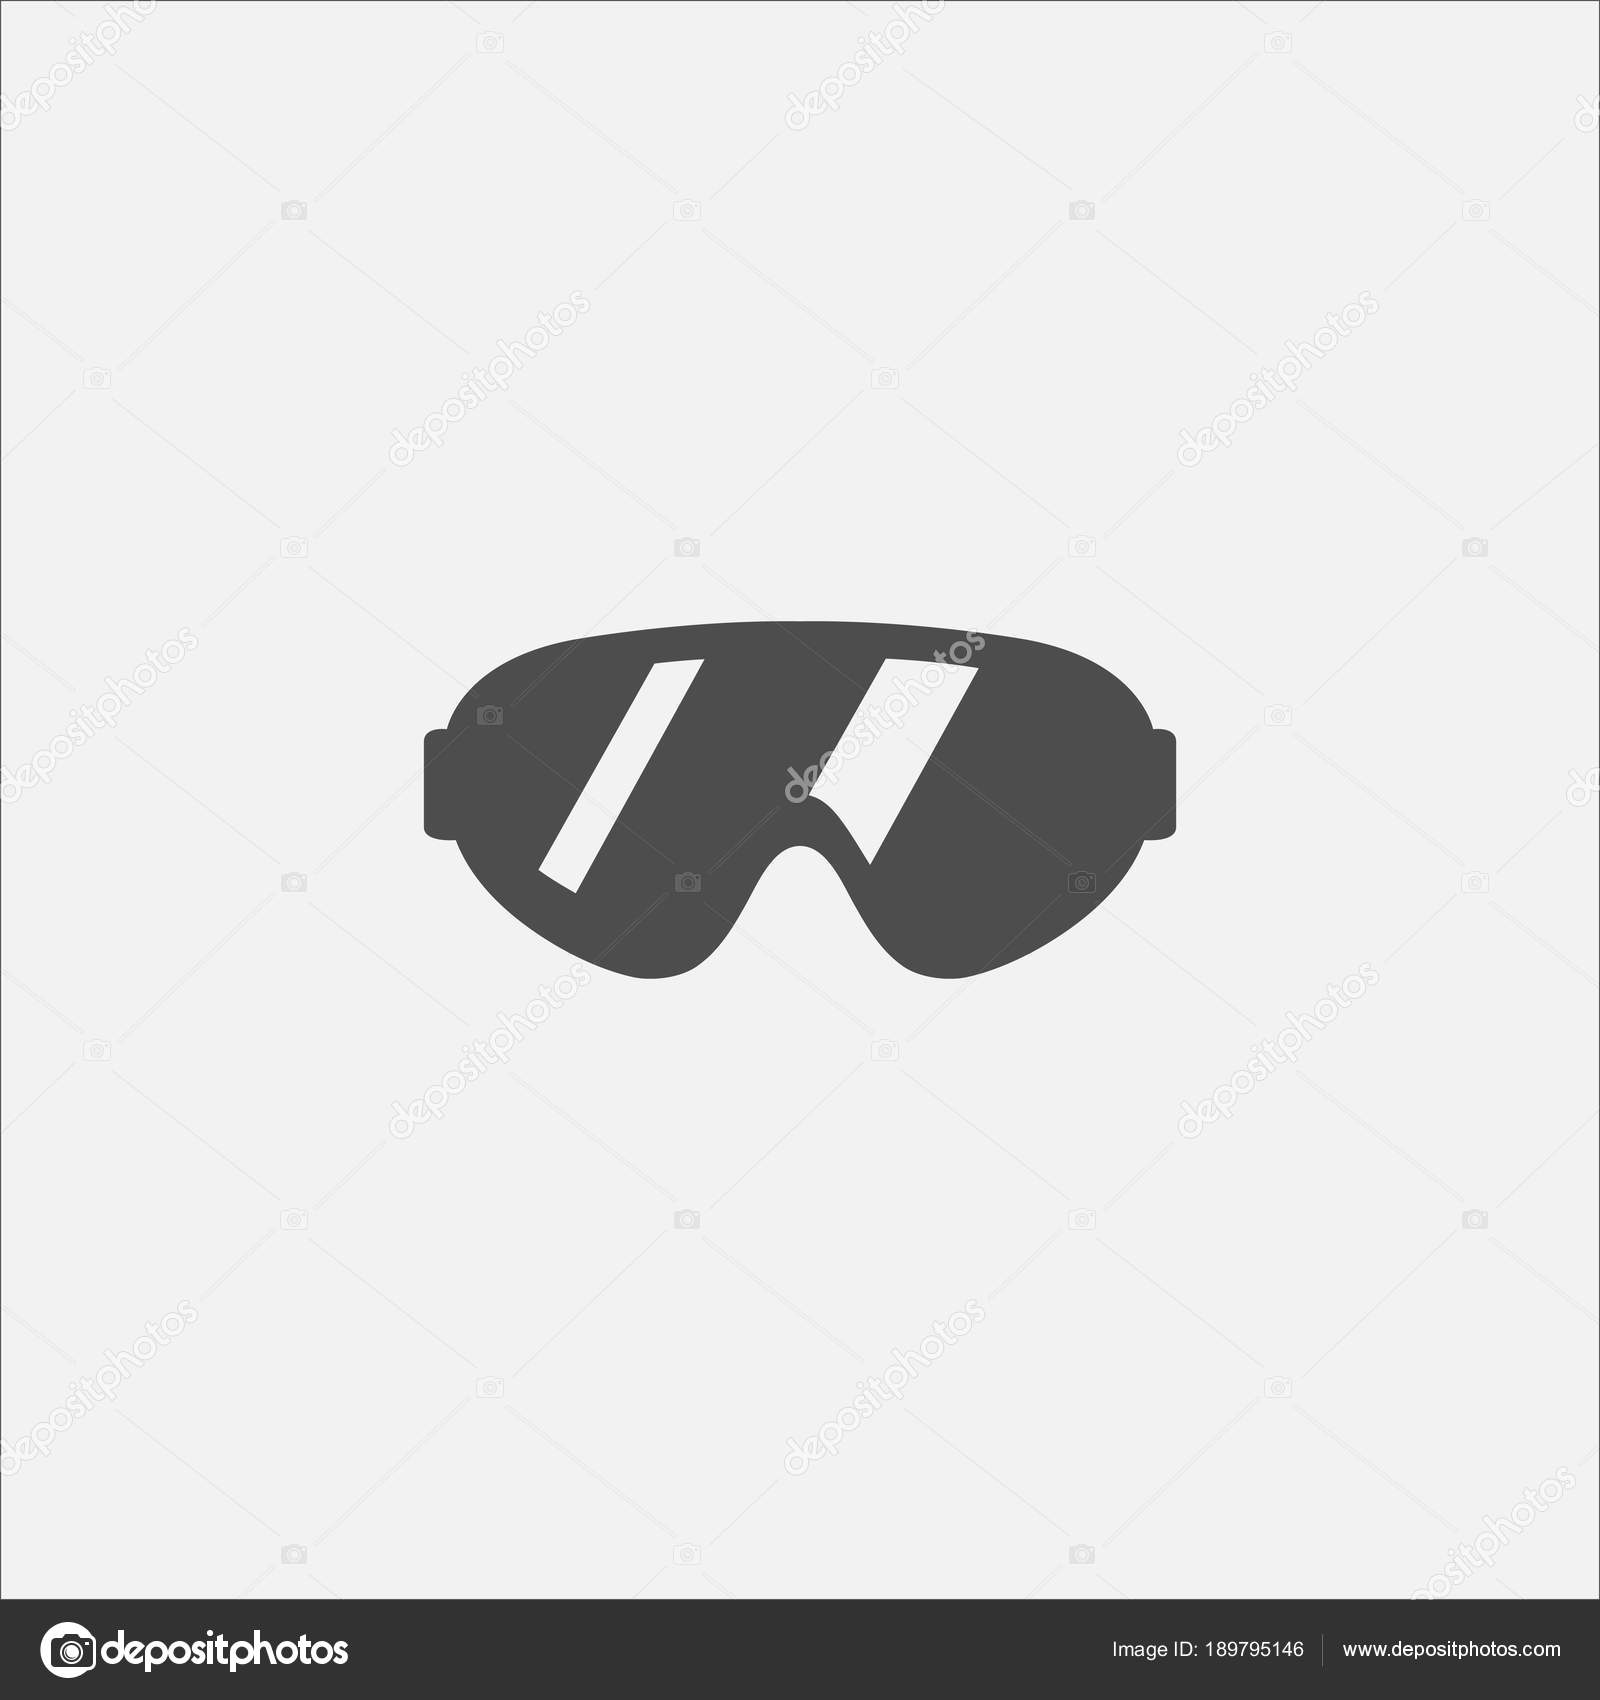 Glasses Symbol Flat Icon For Web In Trendy Flat Style Isolated On